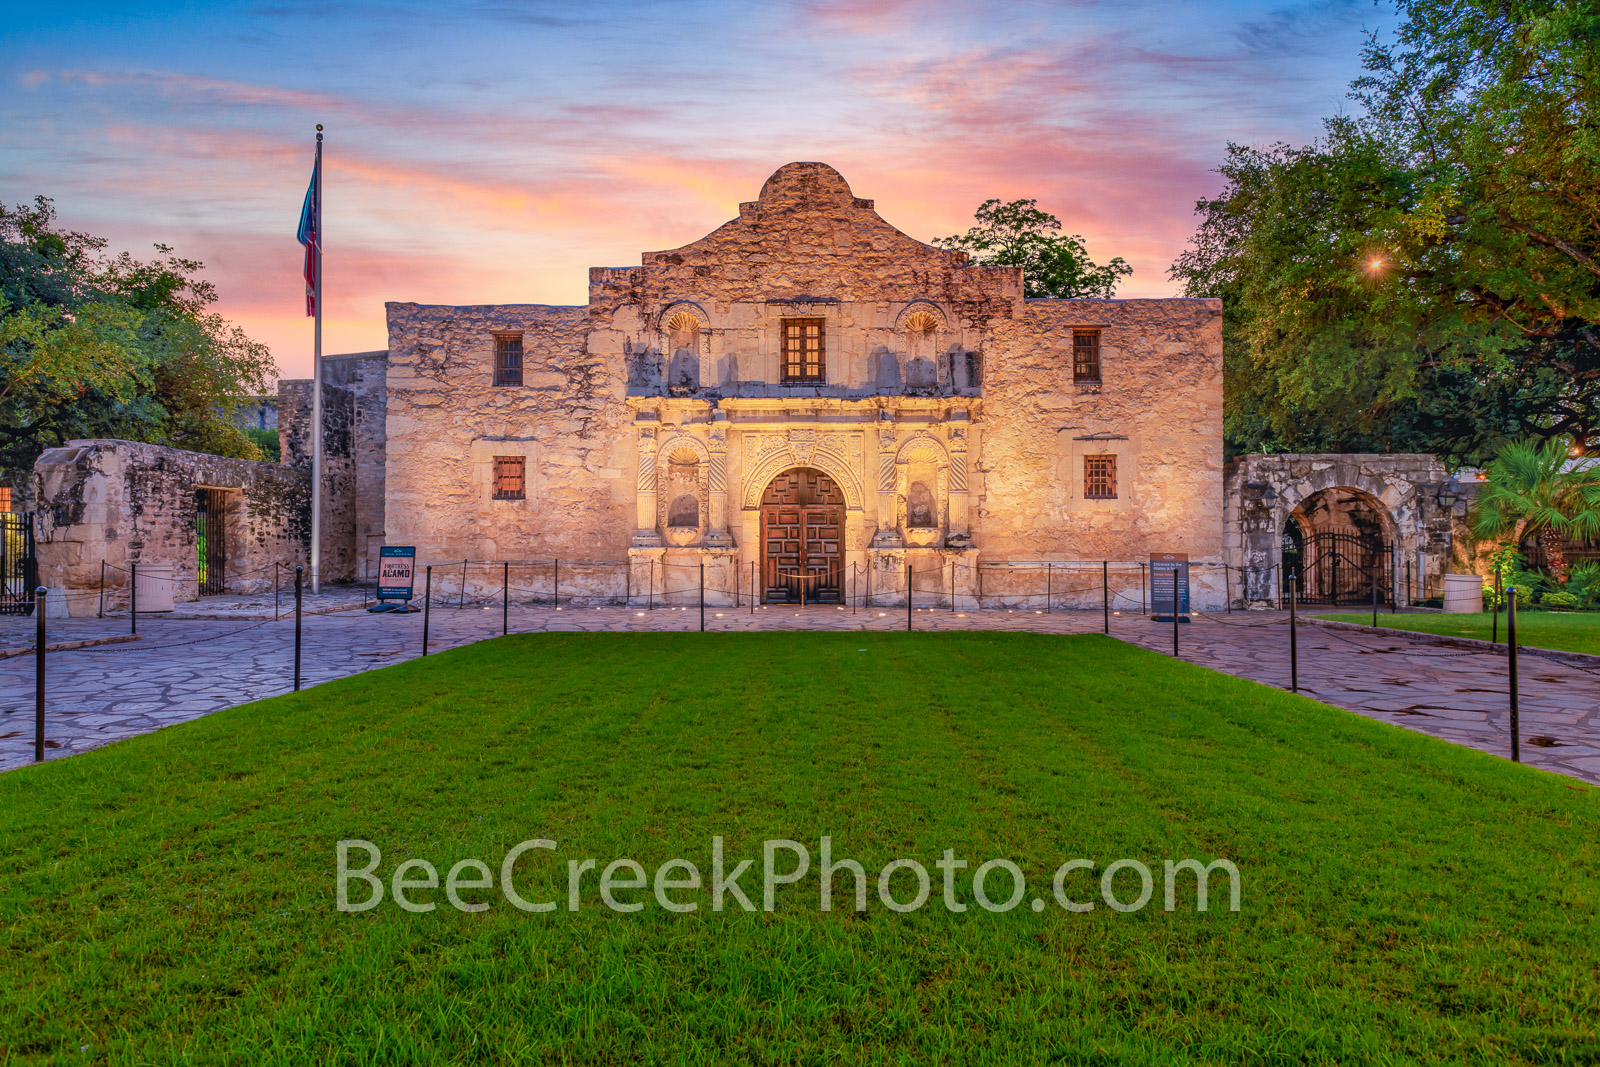 The Alamo at Sunrise, Alamo, The alamo, sunrise, San Antonio, texas,  San Antonio Missions National Historical Park., world heritage site, history, landmark, downtown, city, missions, Santa Anna, mexi